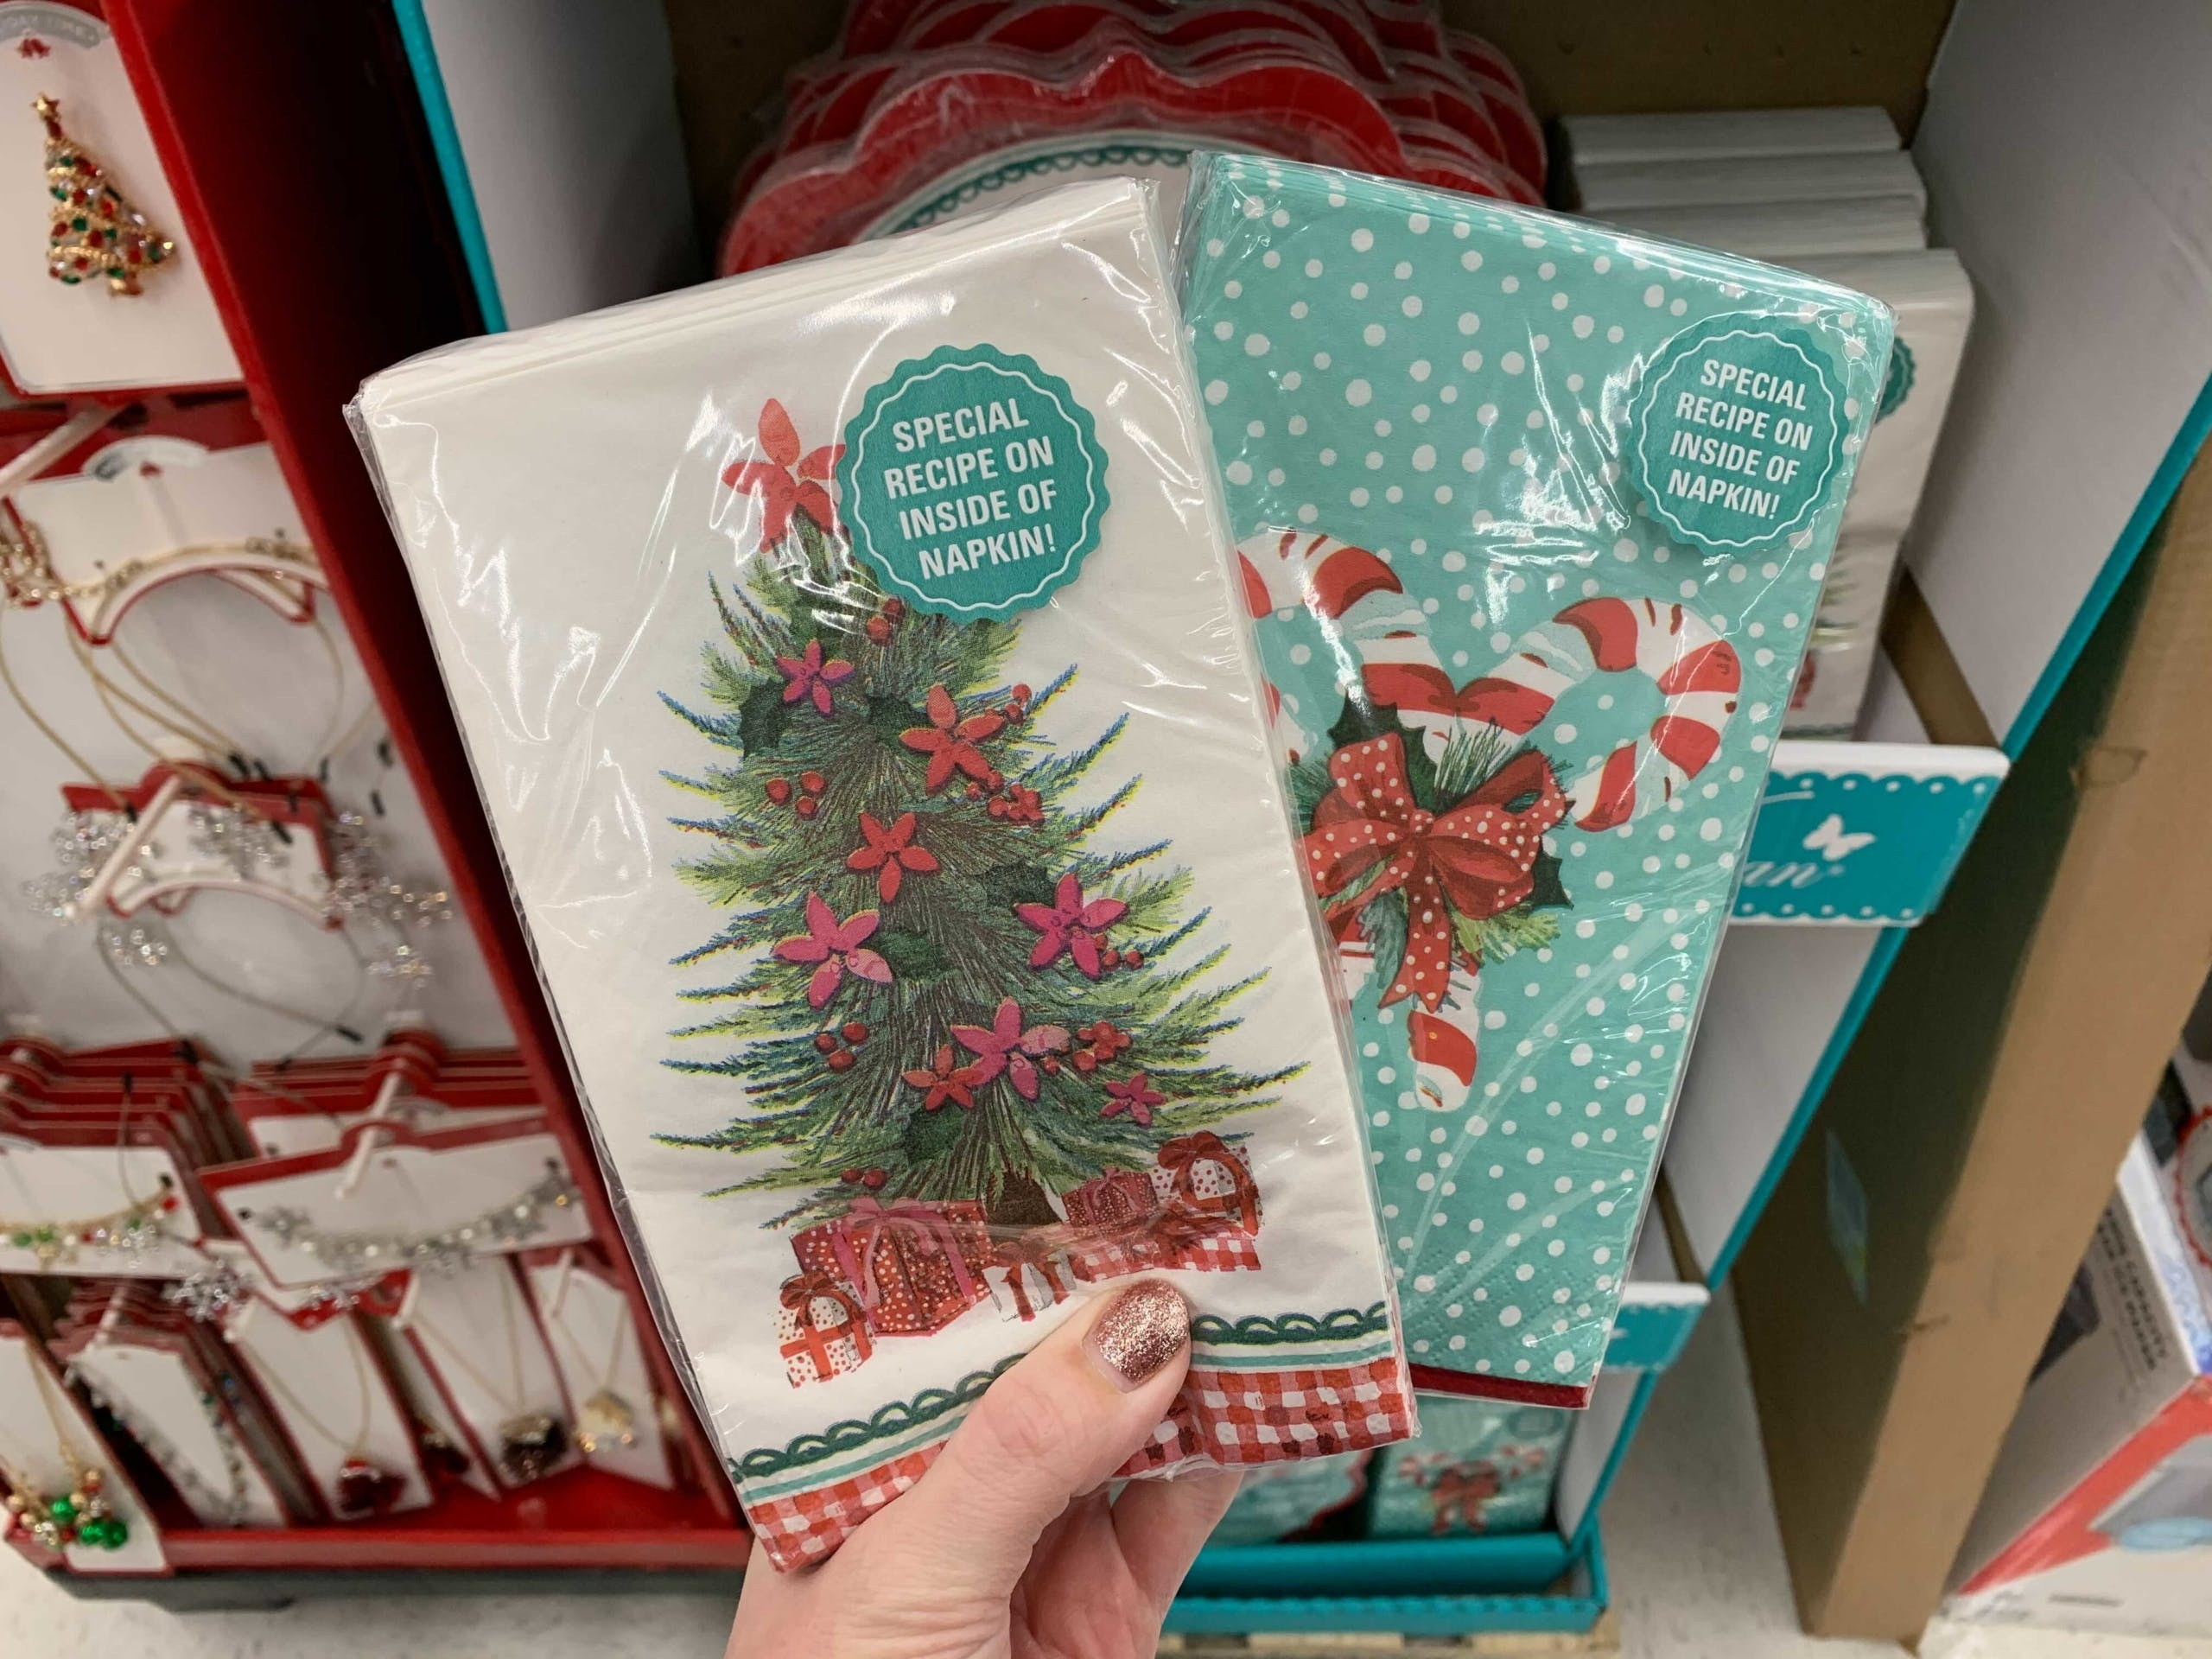 Pioneer Woman Christmas Dishes 2020 The Pioneer Woman Christmas Party Plates, $2.98 at Walmart   The